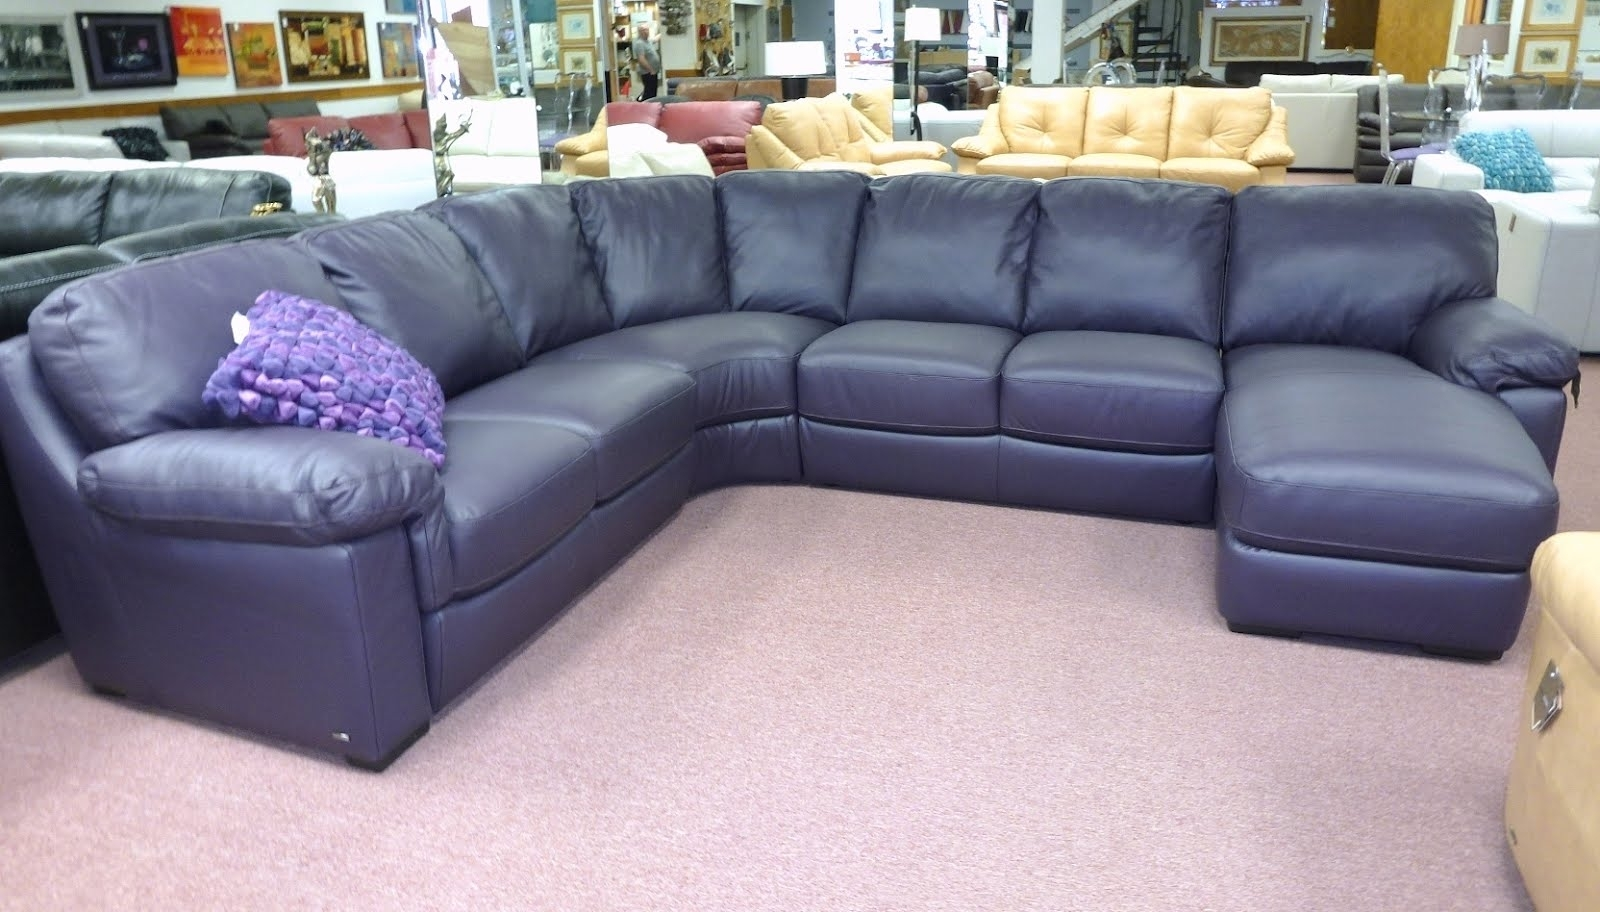 Best Navy Blue Leather Sectional Sofa 64 With Additional Jcpenney Throughout Jcpenney Sectional Sofas (View 5 of 10)